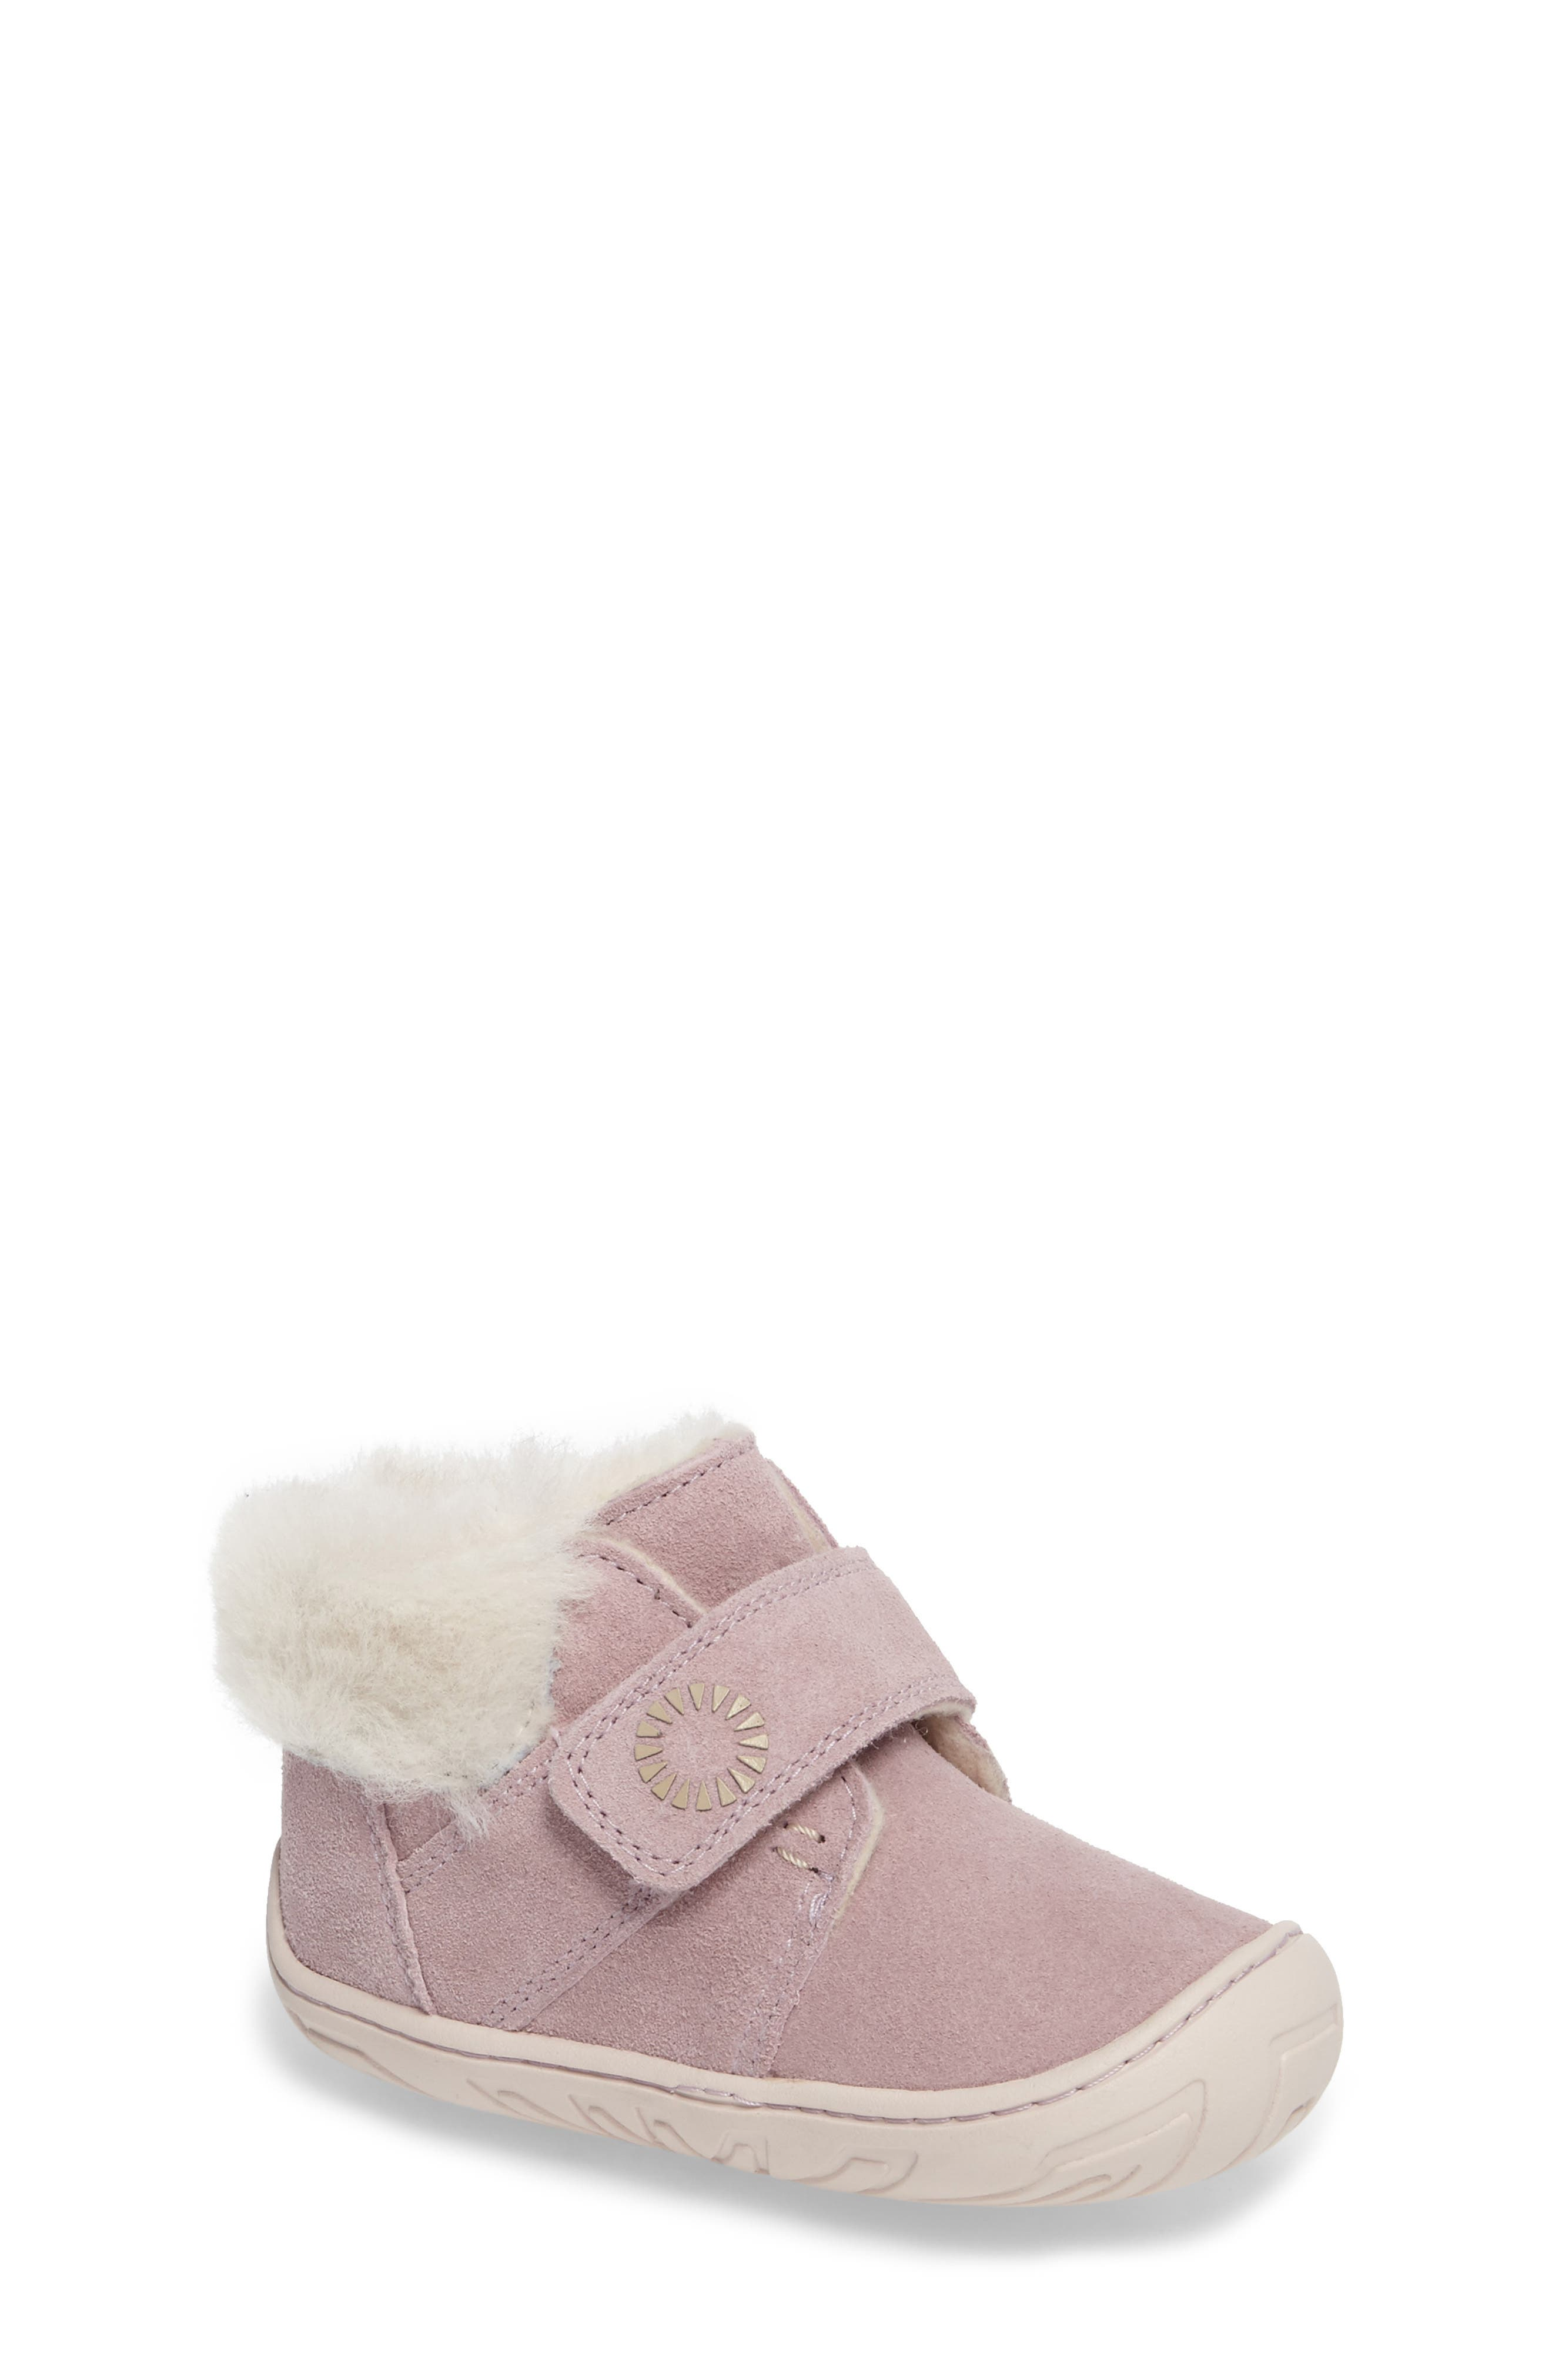 Alternate Image 1 Selected - UGG® Jorgen Genuine Shearling Bootie (Baby, Walker & Toddler)